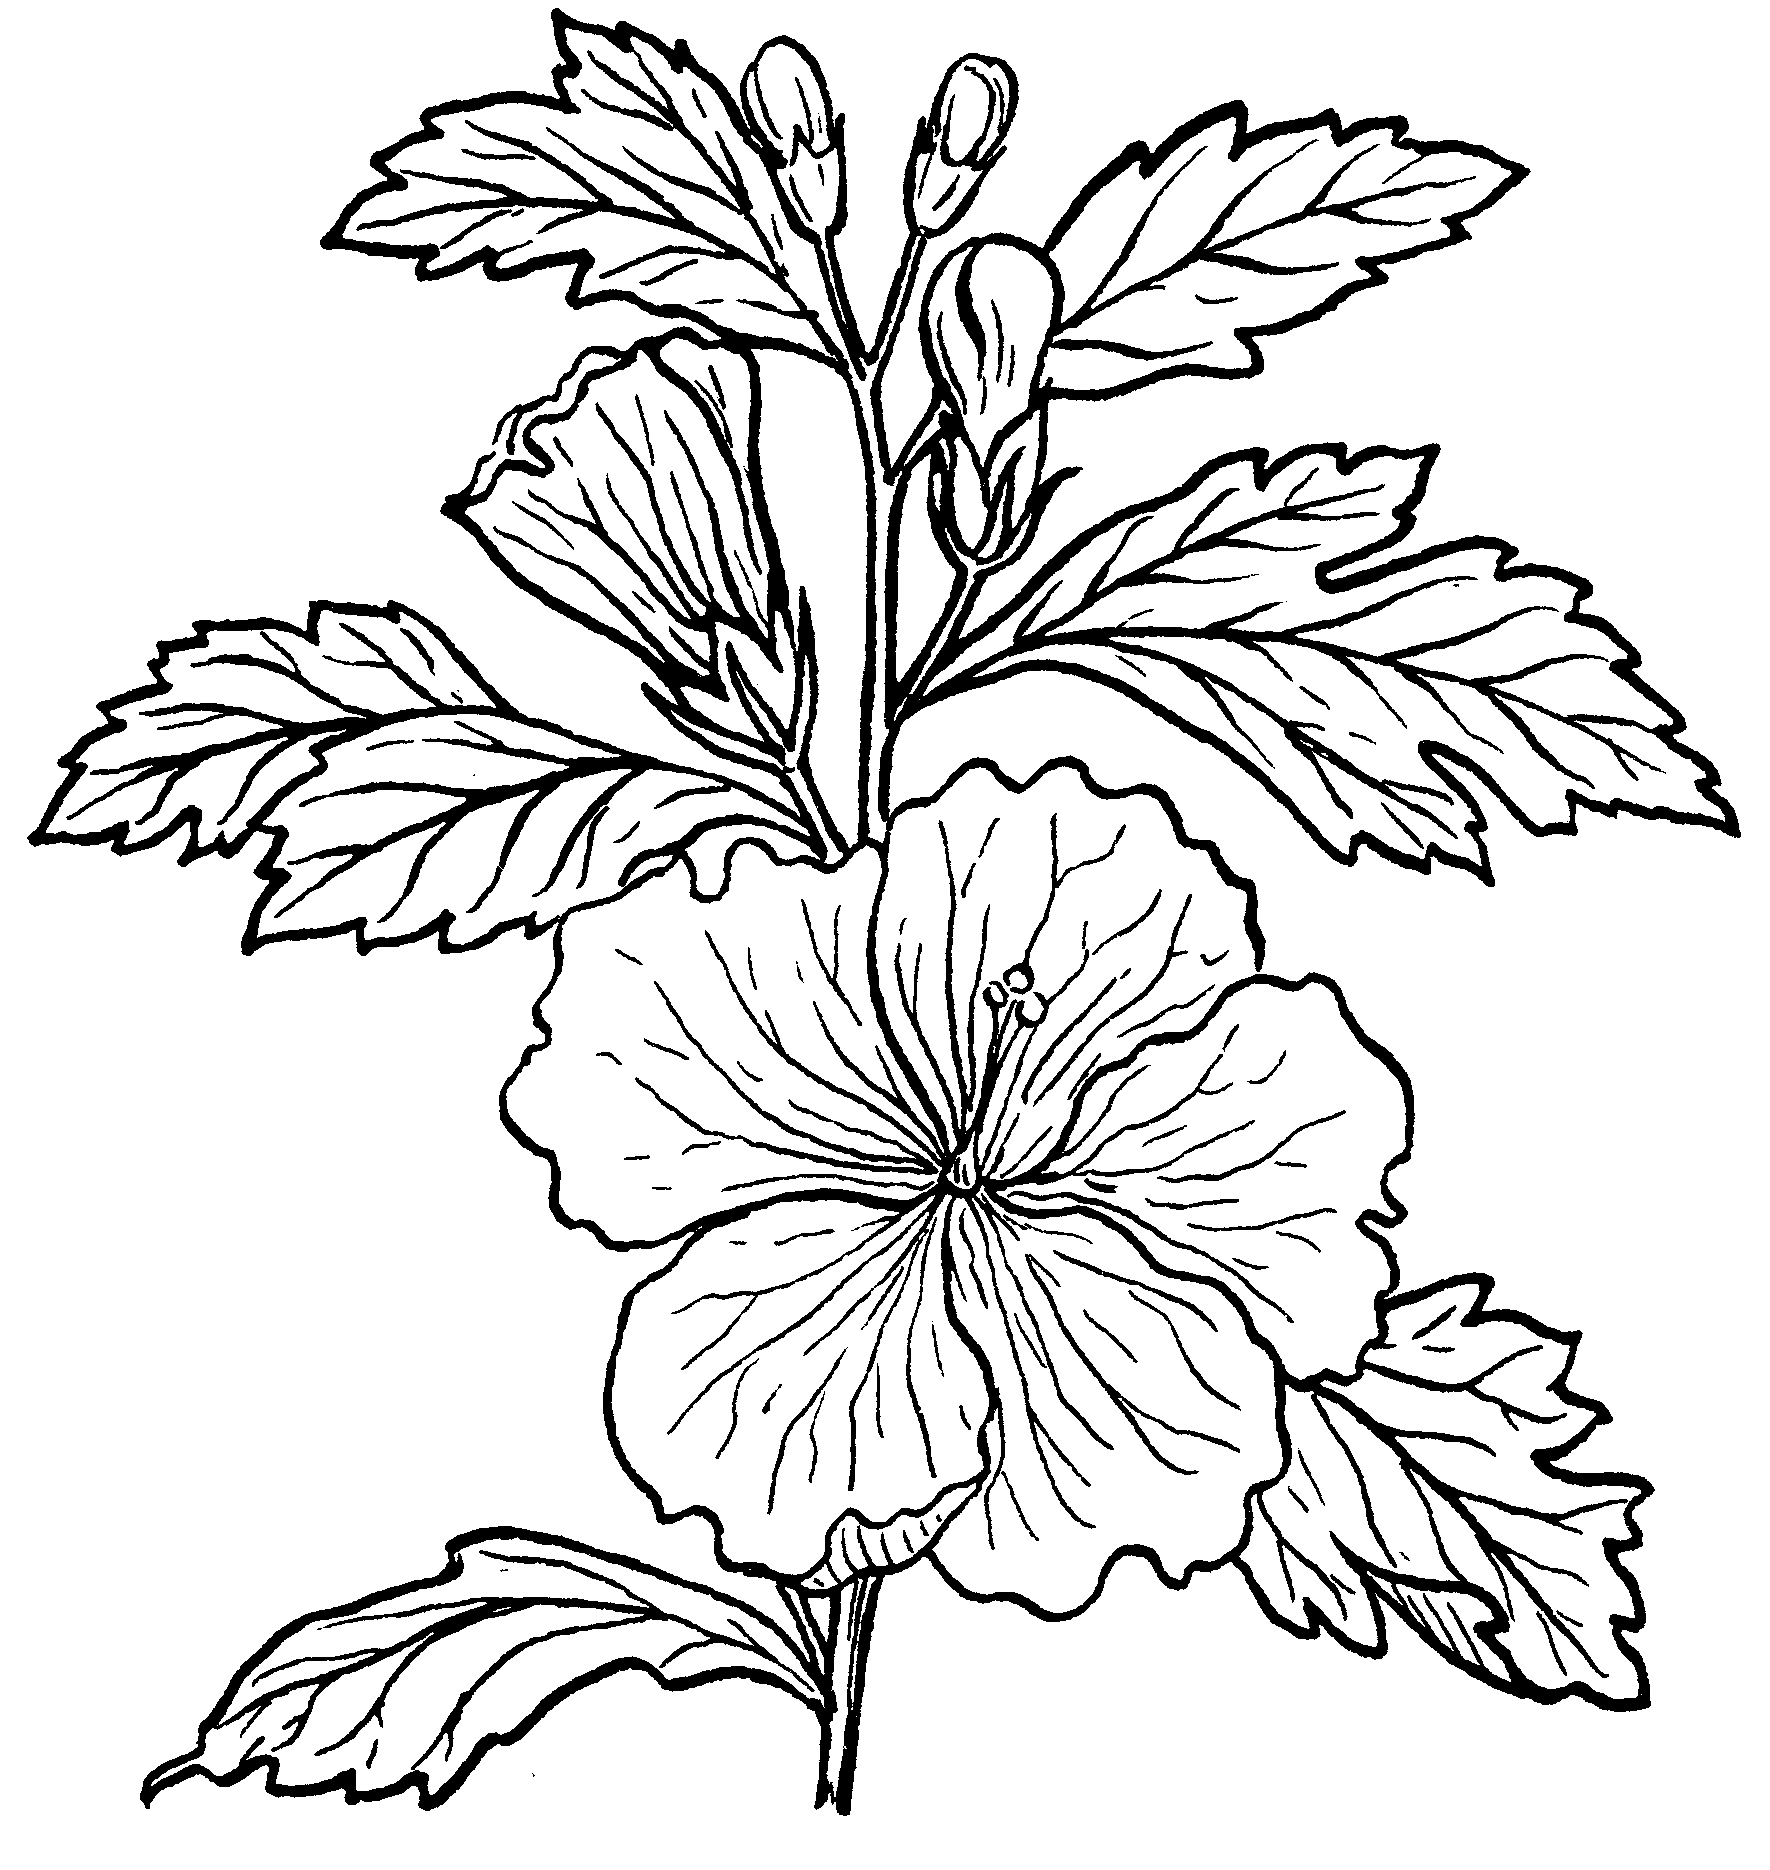 Line drawings google search pyrography pinterest hibiscus line drawings google search flower drawingsline drawingshibiscus izmirmasajfo Choice Image